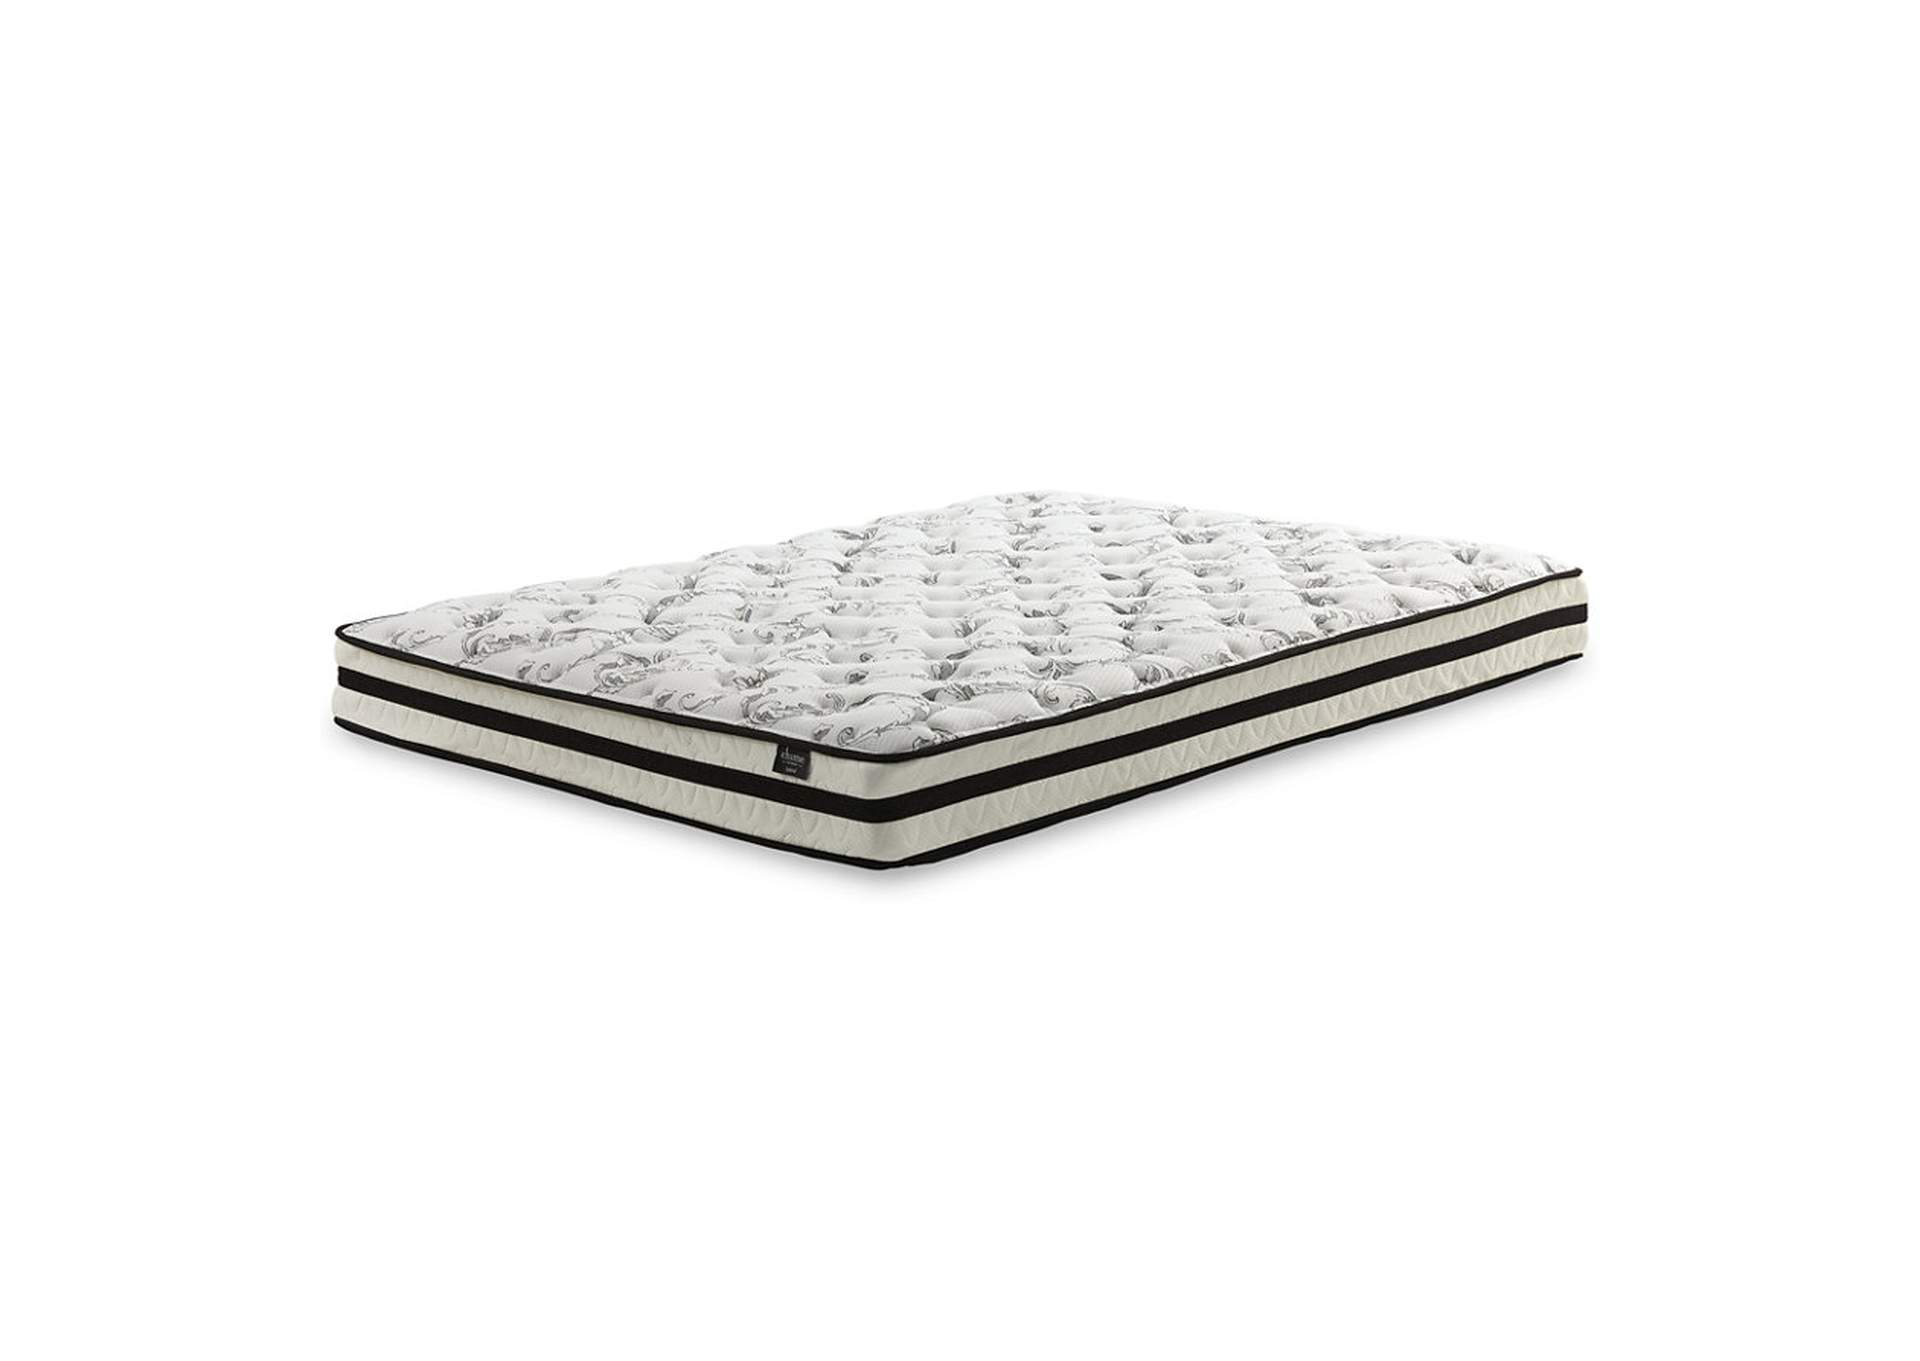 8 Inch Chime Innerspring Full Mattress in a Box,Sierra Sleep by Ashley